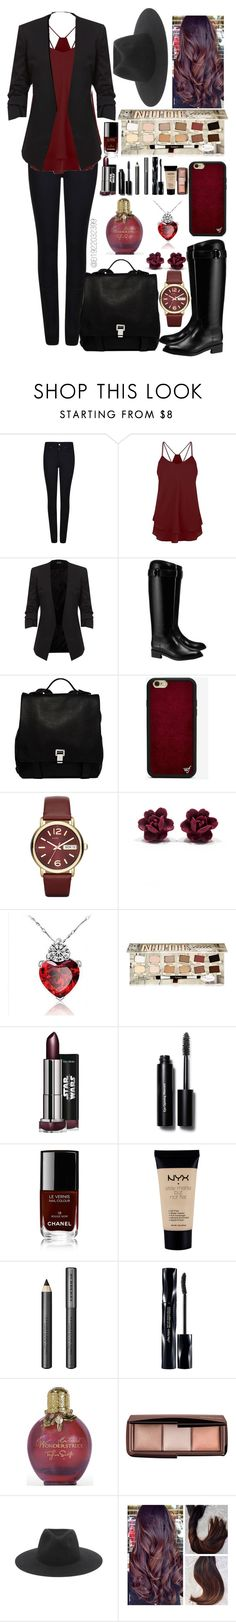 """""""Heartbreak's the National Anthem We Sing it Proudly."""" by el1922032399 ❤ liked on Polyvore featuring Giorgio Armani, Tory Burch, Proenza Schouler, Wildflower, Marc by Marc Jacobs, TheBalm, Bobbi Brown Cosmetics, Chanel, NYX and Burberry"""